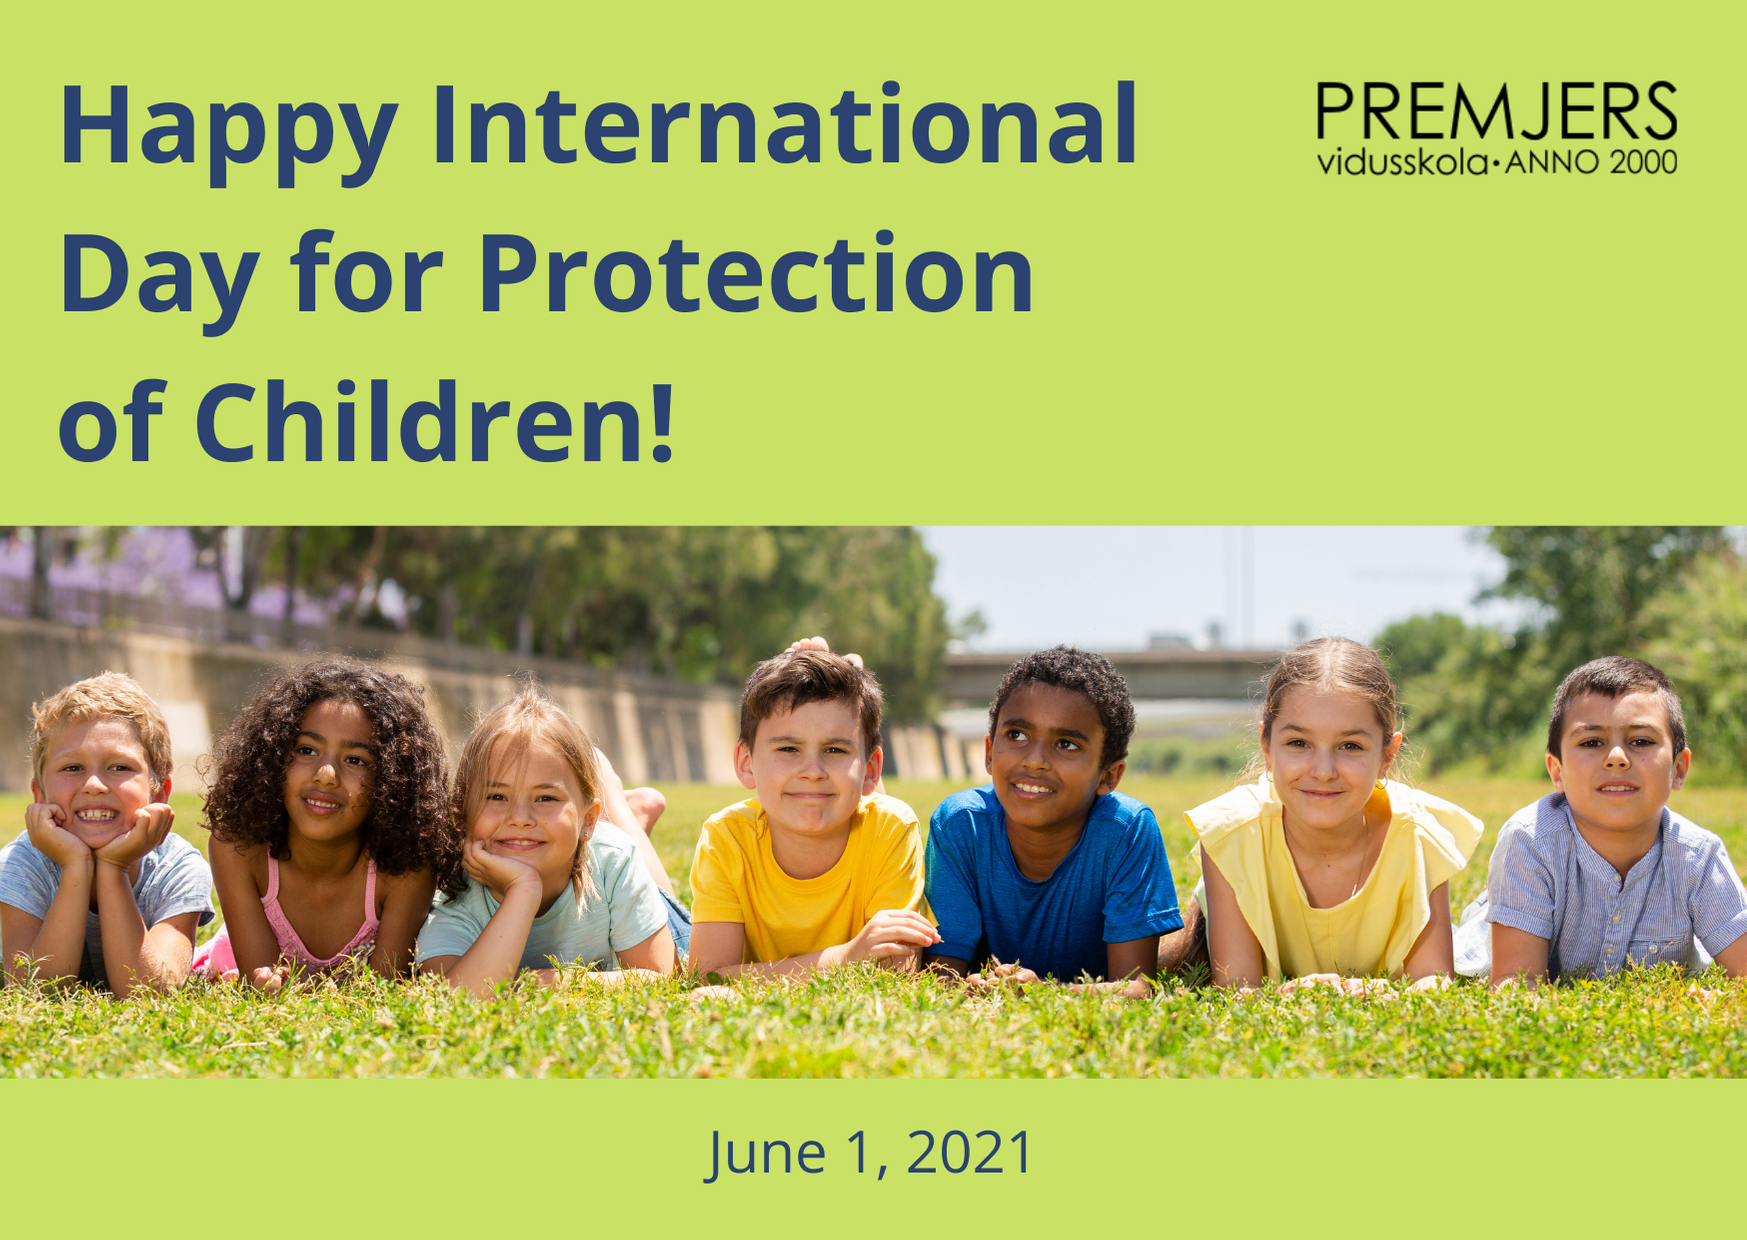 Happy International Day for Protection of Children